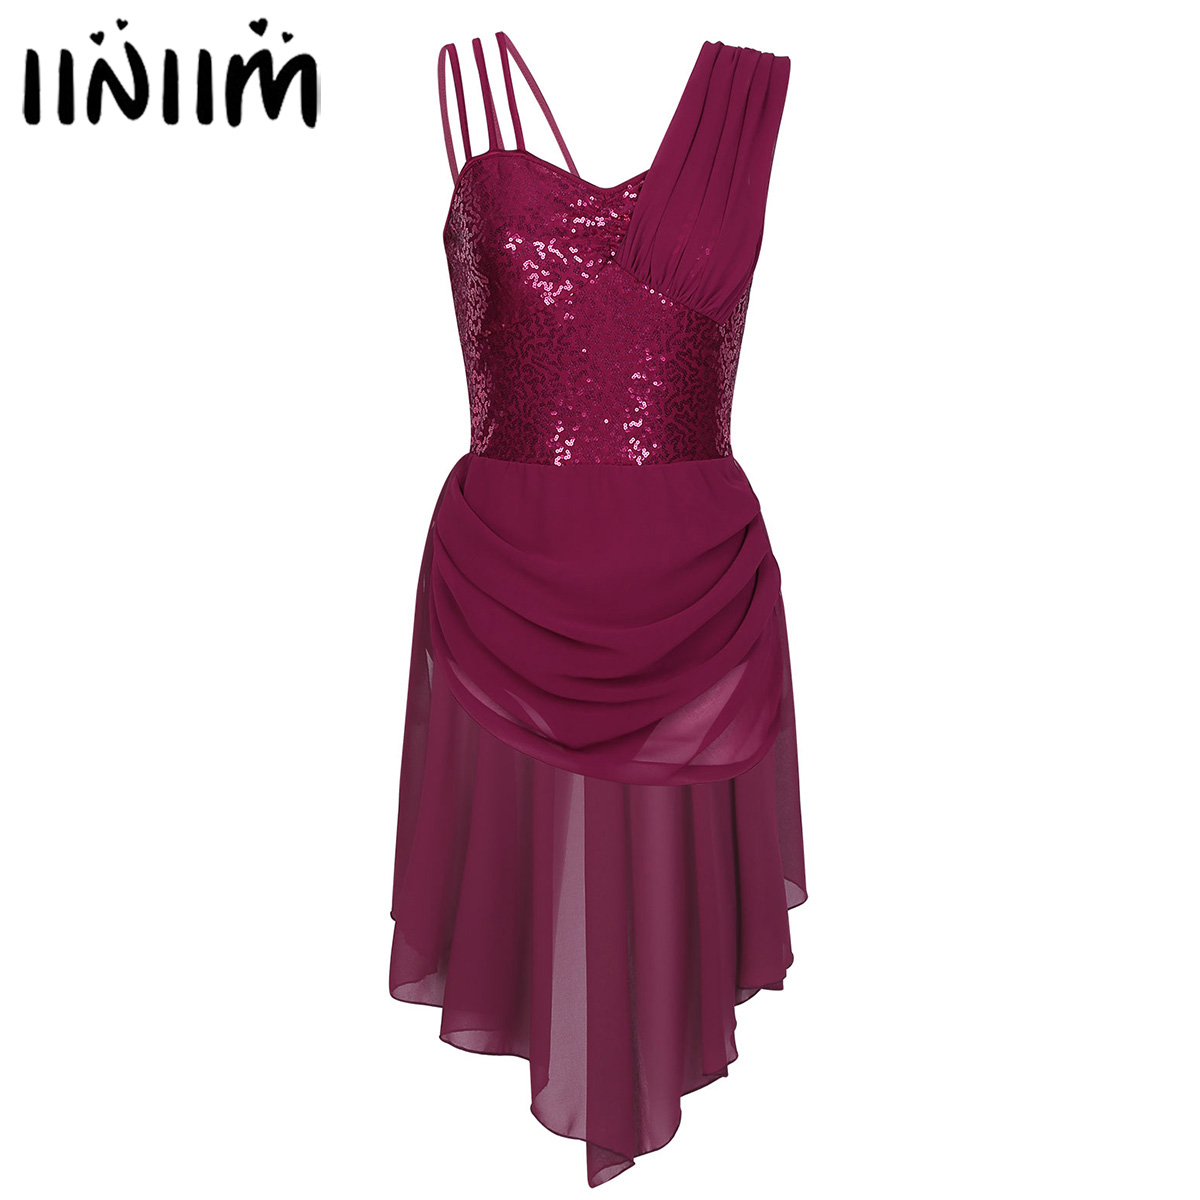 iiniim Women Femme Ballet Costume Spaghetti Straps Sequins Reflective Irregular Chiffon Ballet Dance Leotard Gymnastic Dress